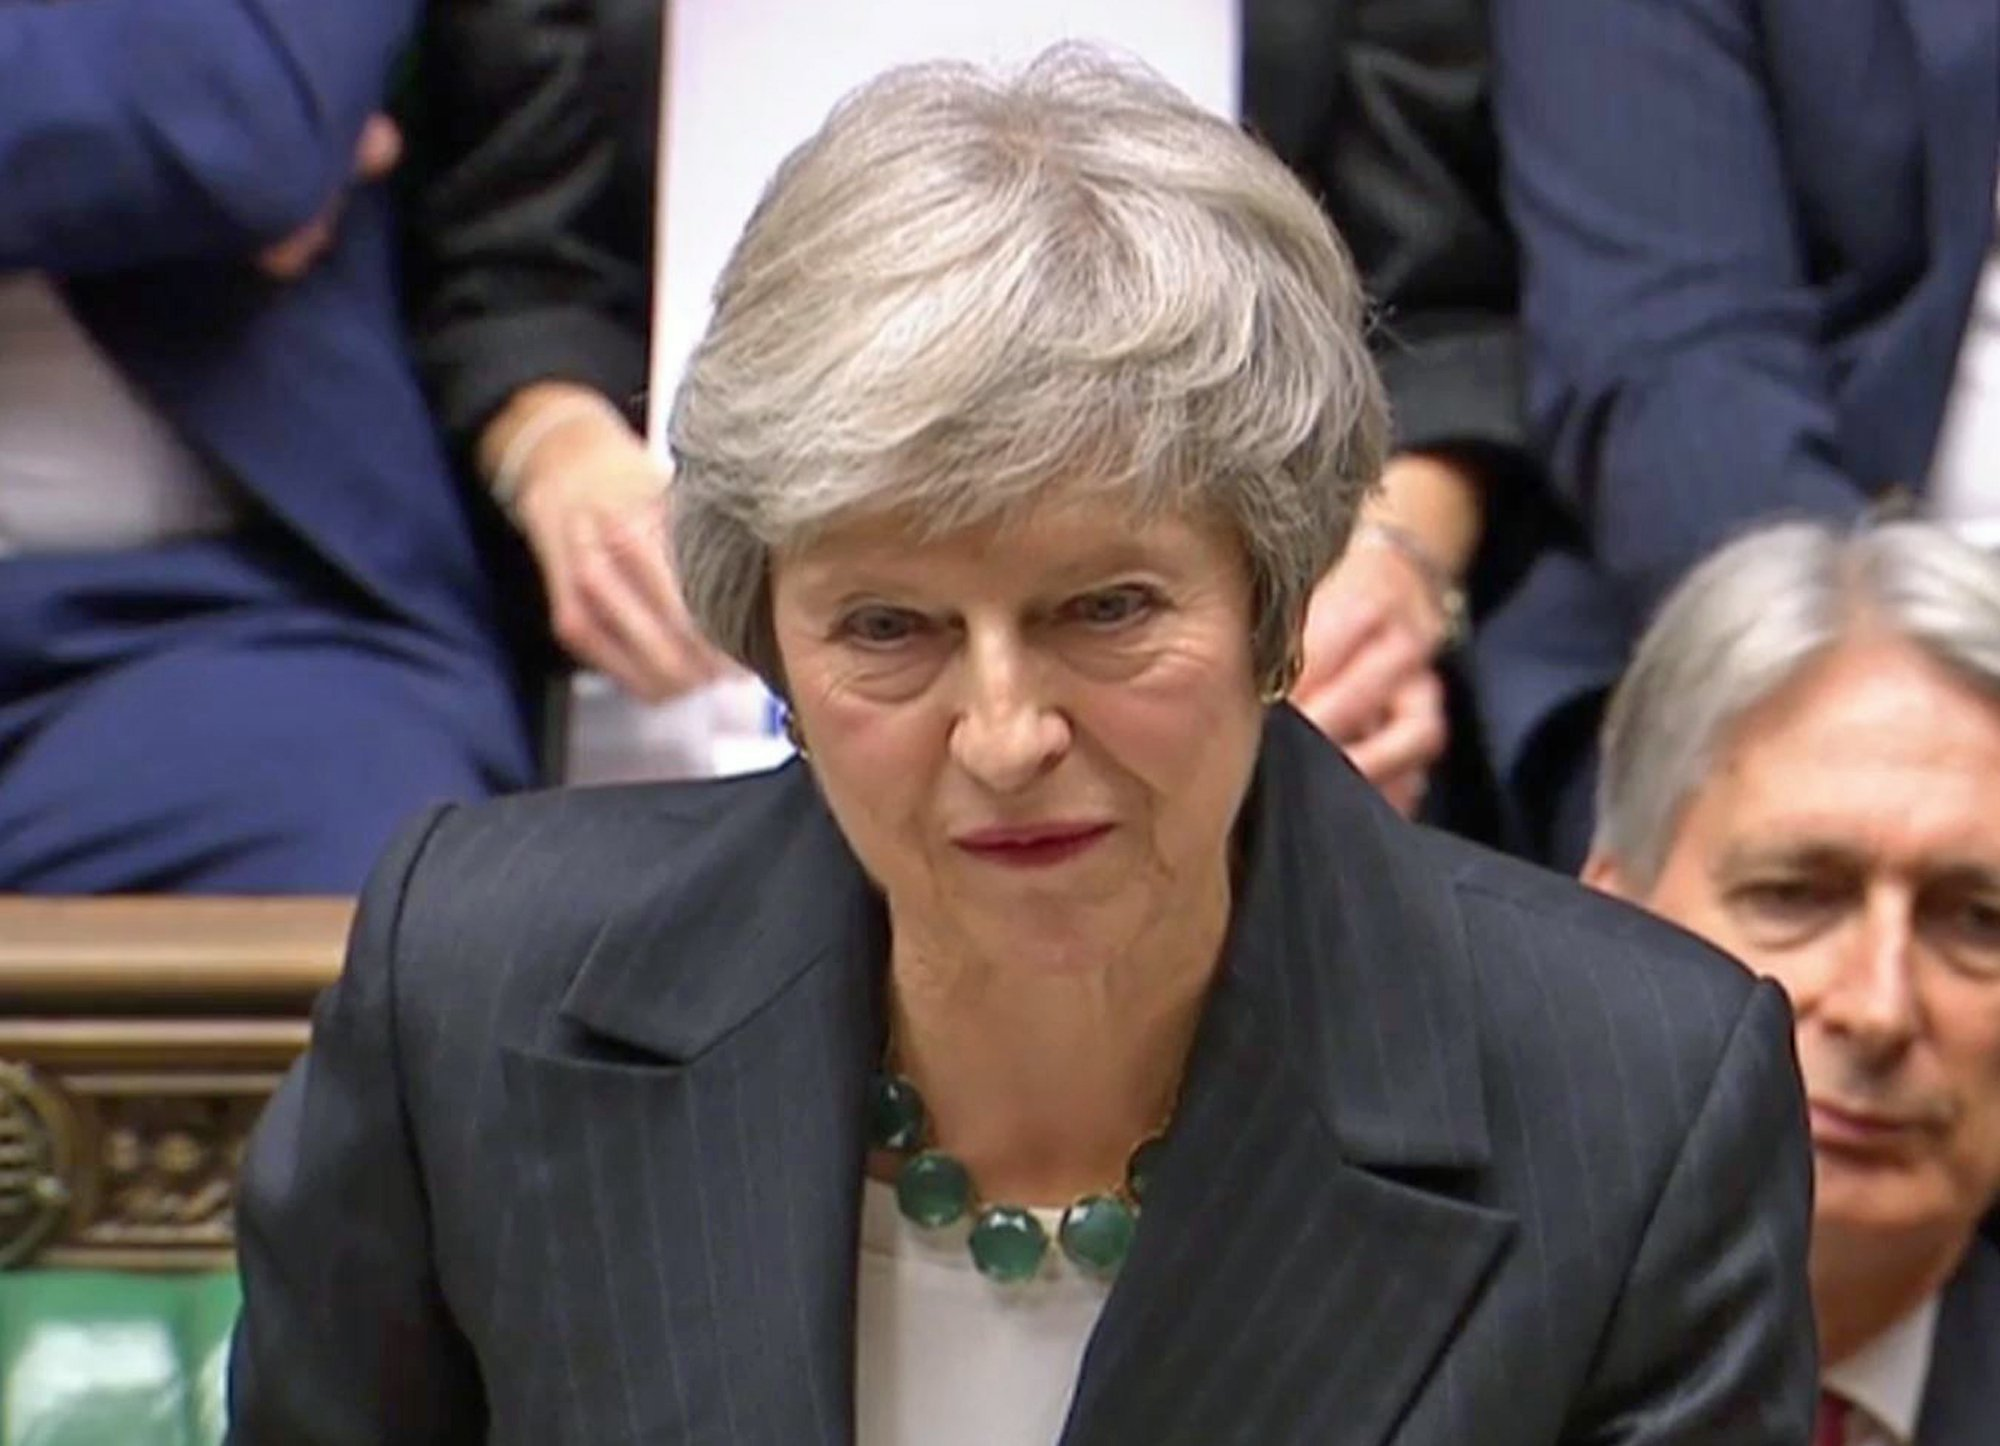 Prime Minister Theresa May makes a statement on the draft Brexit withdrawal agreement in the House of Commons, London. PRESS ASSOCIATION Photo. Picture date: Thursday November 15, 2018. See PA story POLITICS Brexit. Photo credit should read: PA Wire